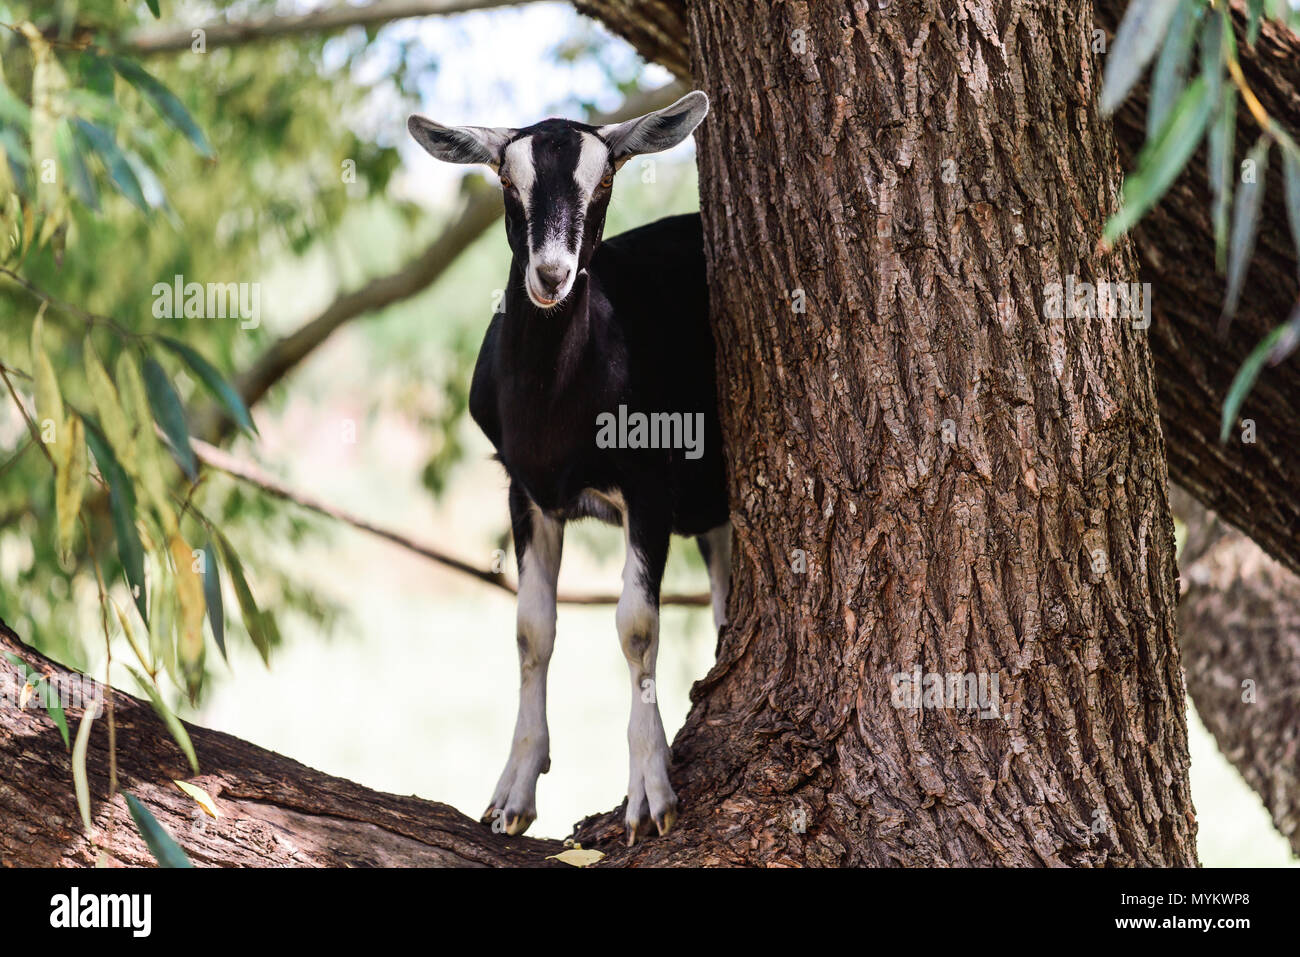 Goat standing on eucalyptus tree in rural area of South Australia - Stock Image